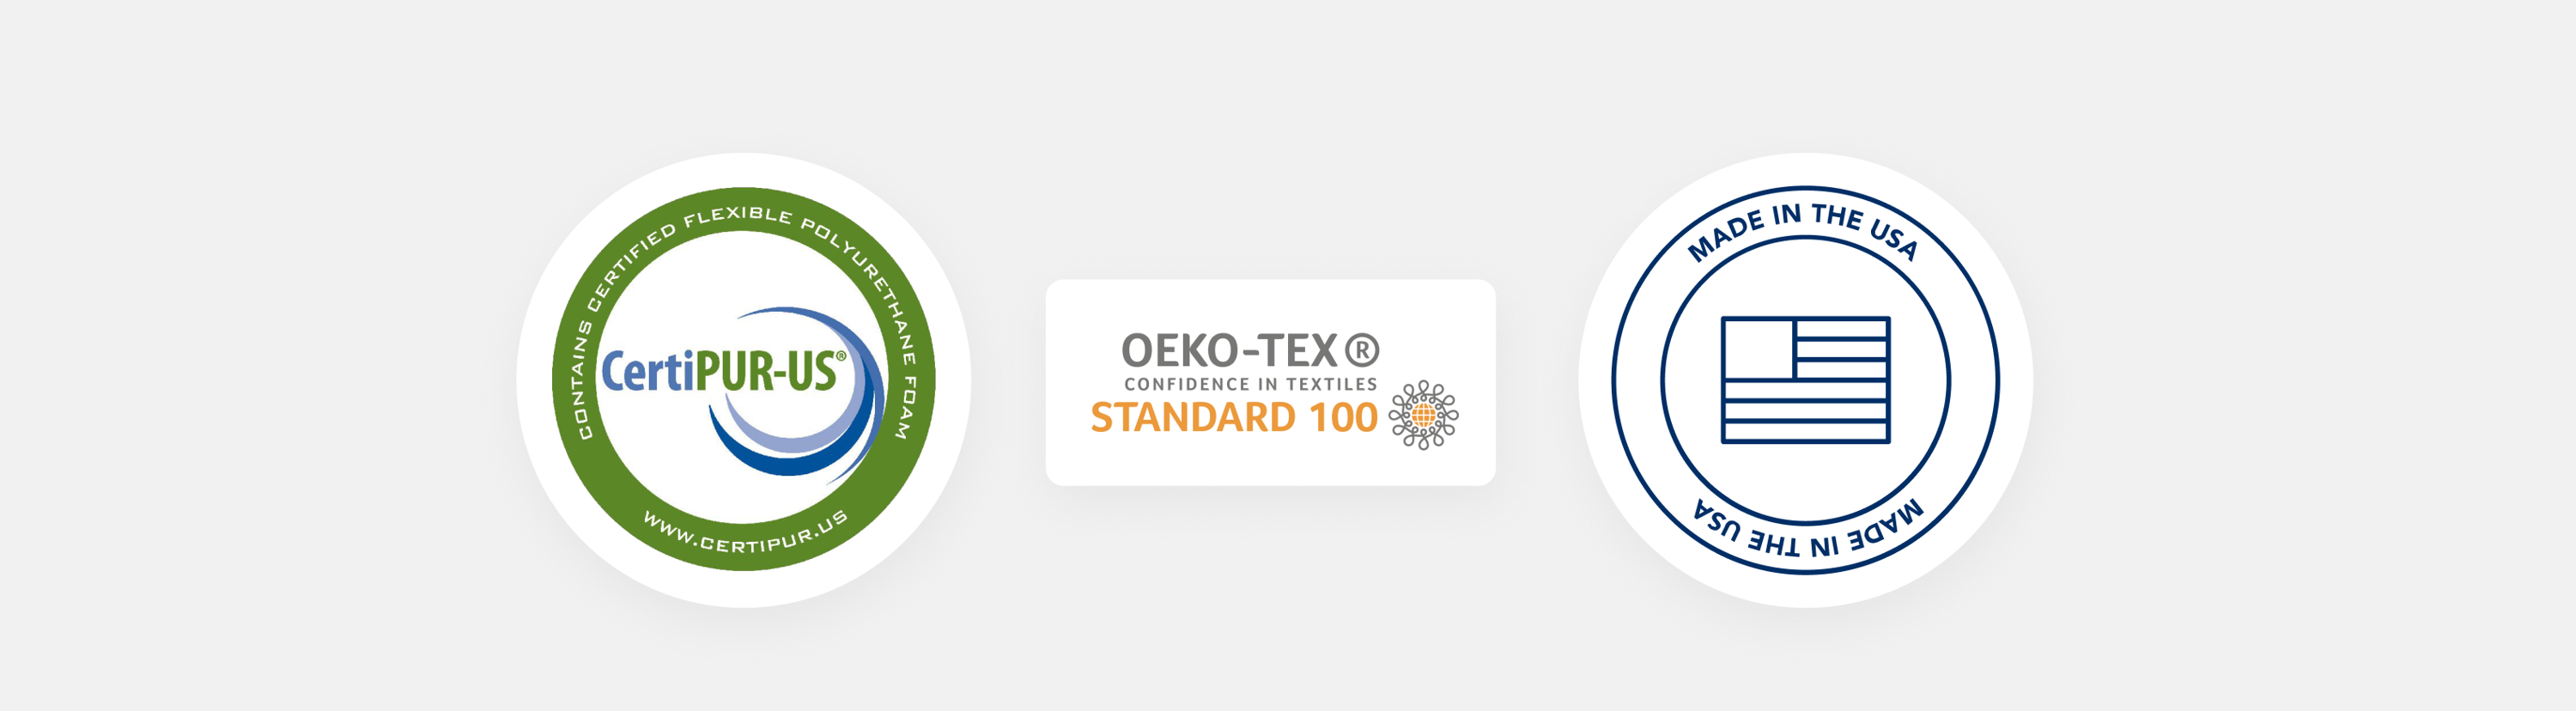 CertiPUR-US, OEKO-TEX, and Made in the USA certifications